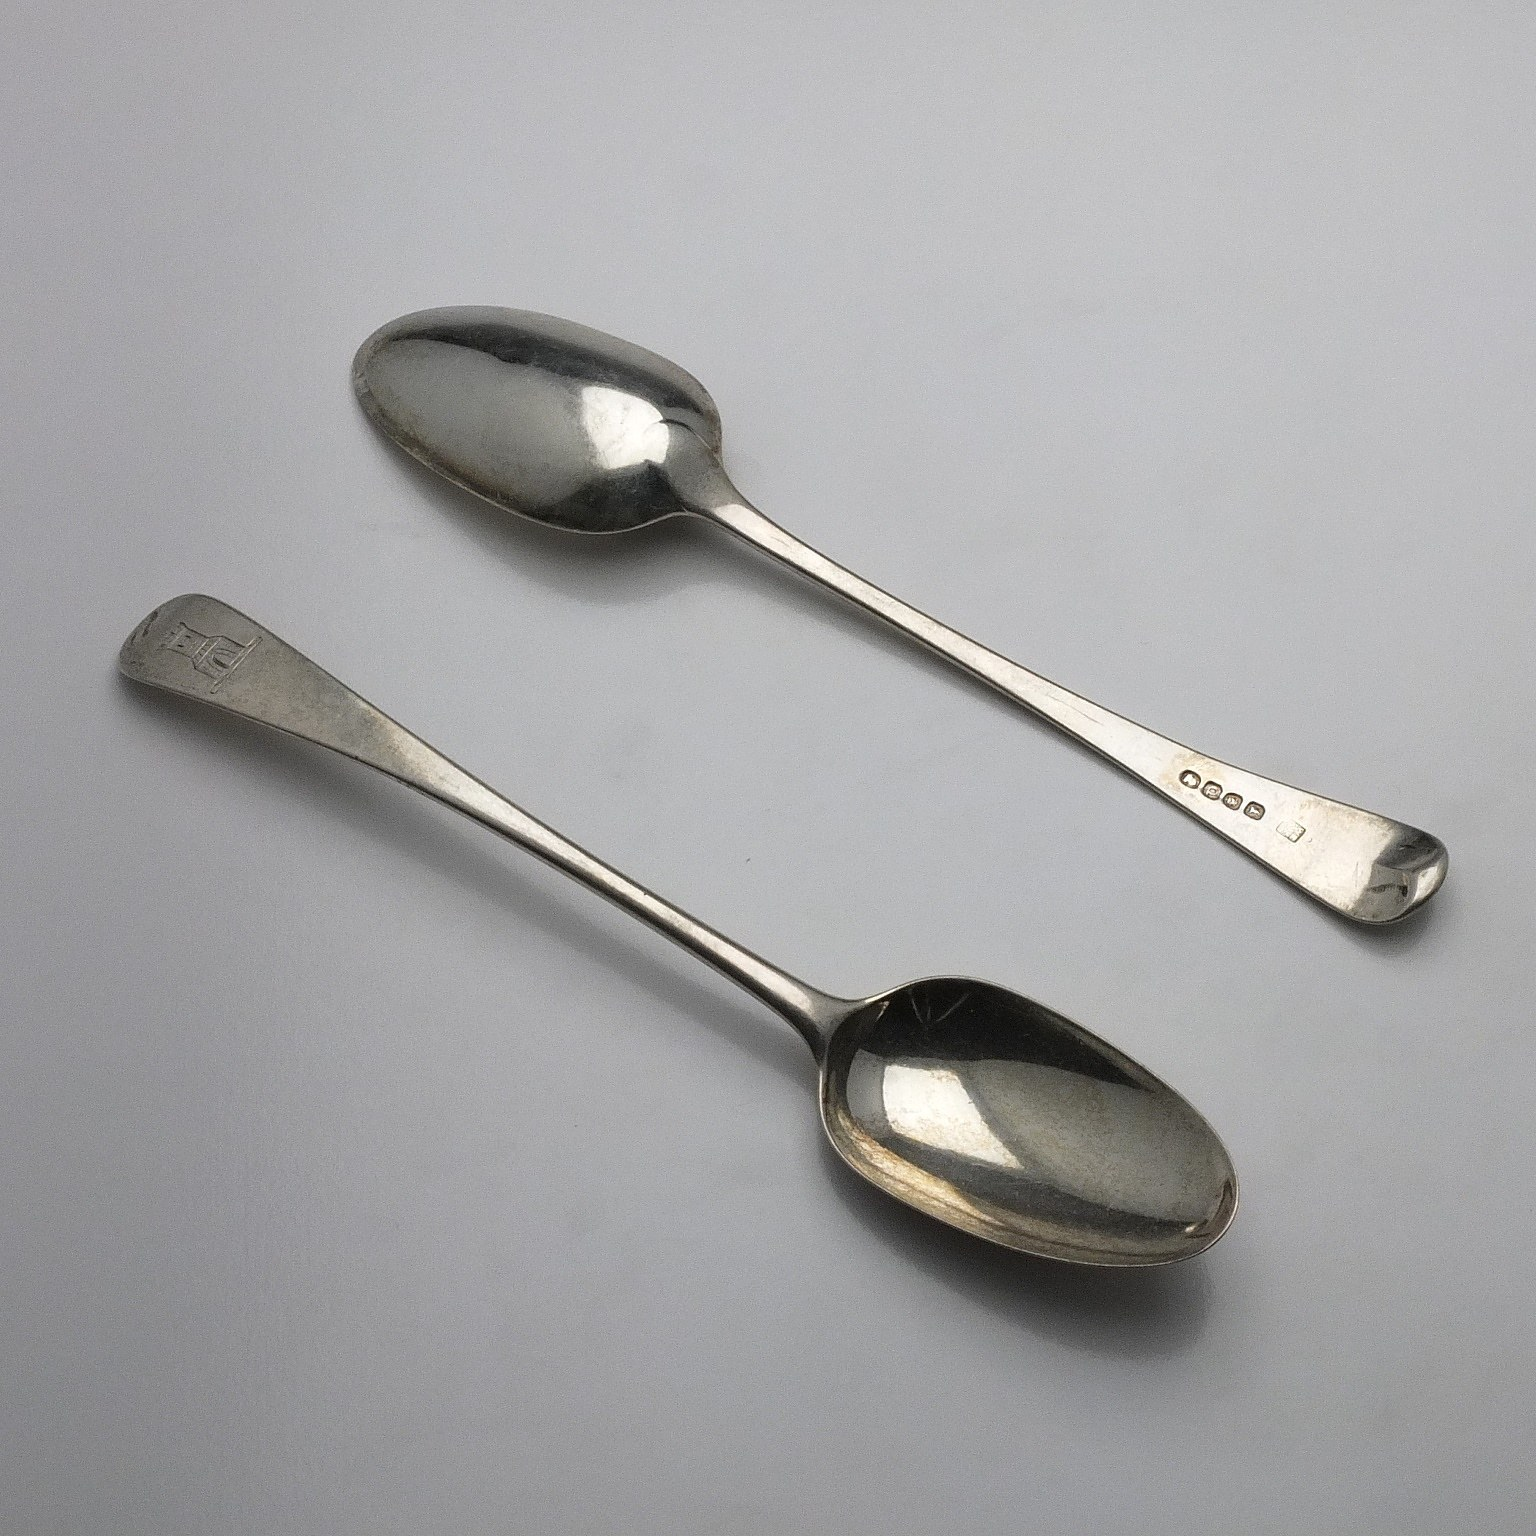 'Two George III Crested Sterling Silver Table Spoons William Eley, William Fearn & William Chawner London 1811'